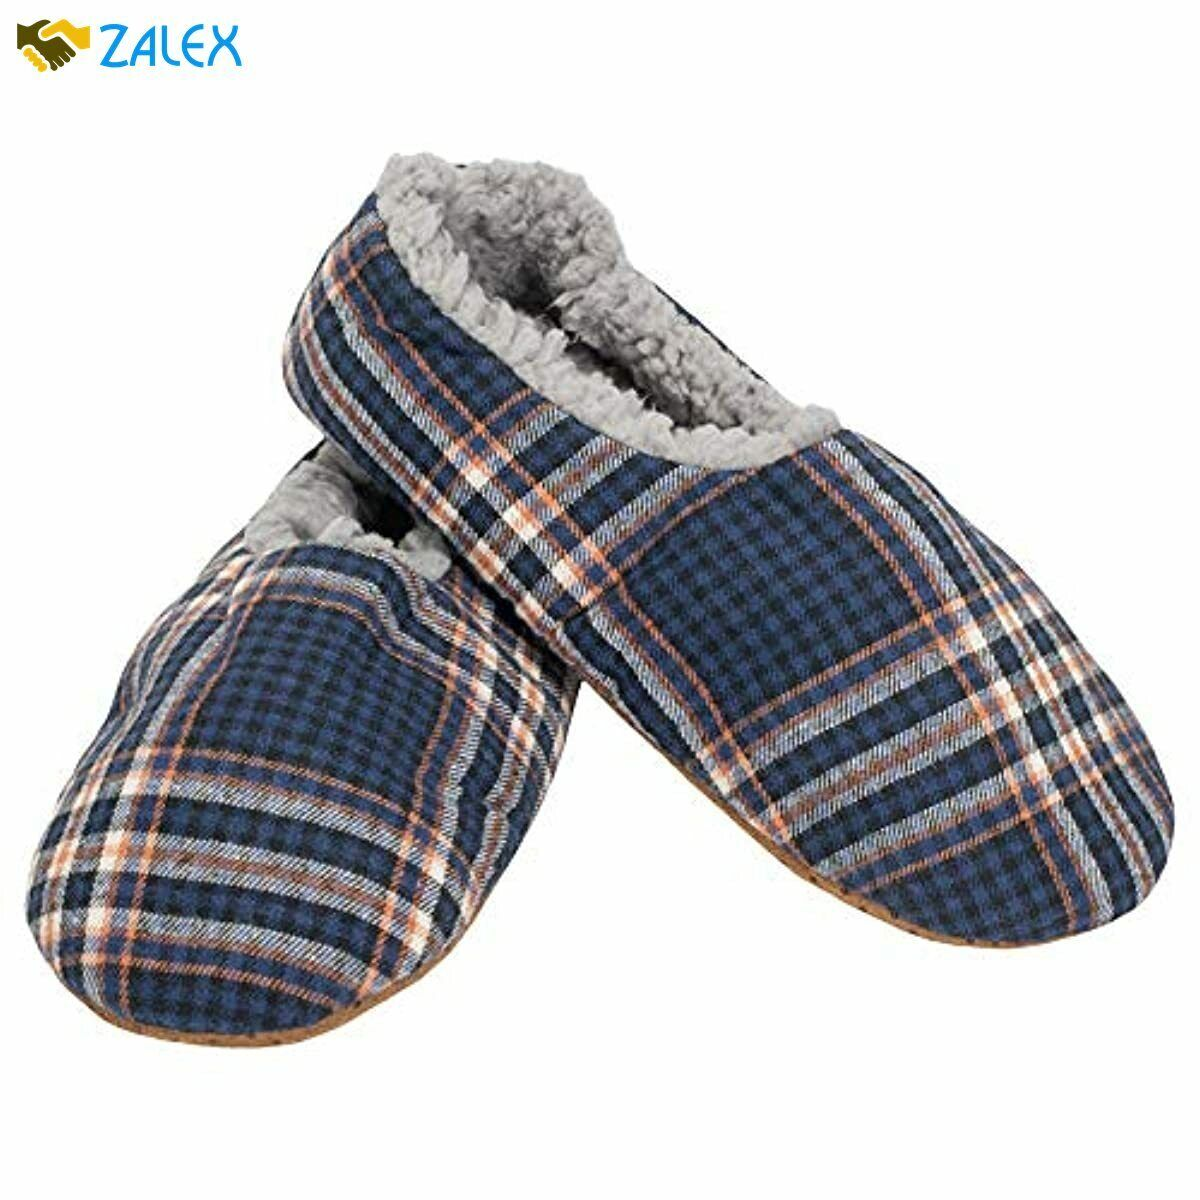 Mens Plaid Plush Lined Cozy Non Slip Indoor Soft Slippers